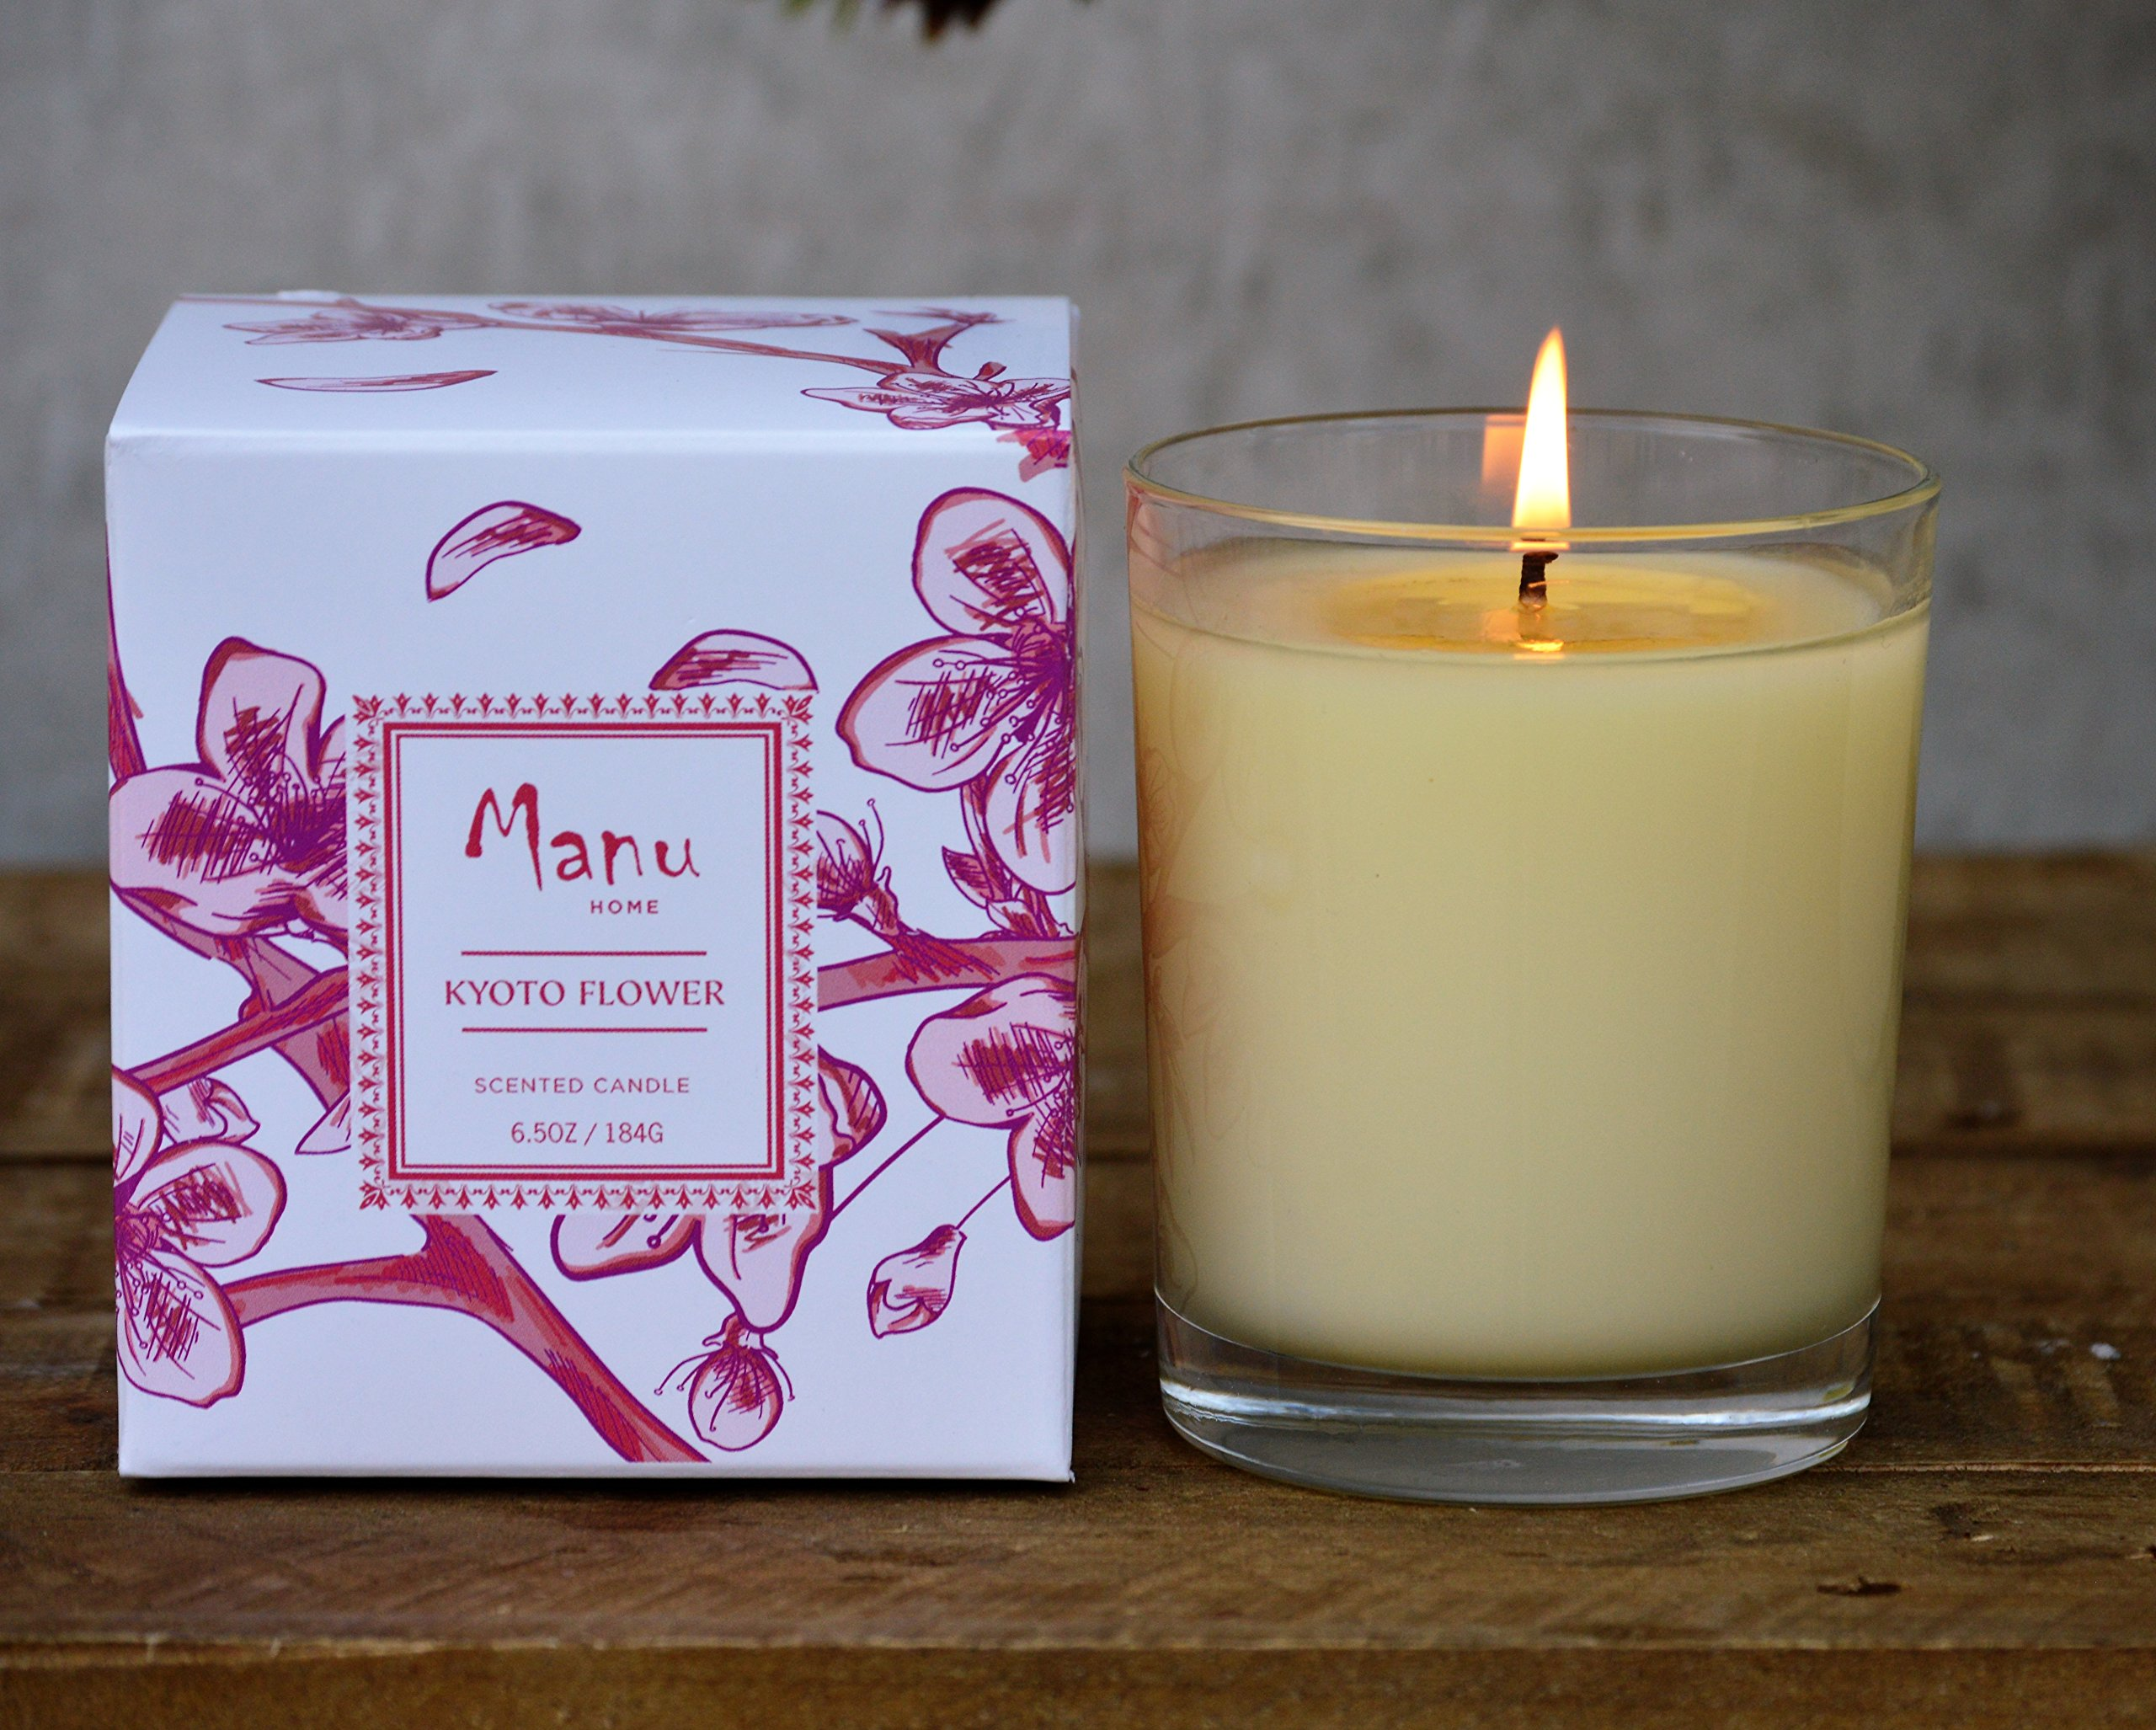 SALE~ Manu Home Kyoto Scented Candle ~ A refreshing blend of Peach Blossoms, Tea Leaves blended with notes of Amber & Jasmine. Soothing Aromatherapy relaxation scent~ 6.5oz by Manu Home